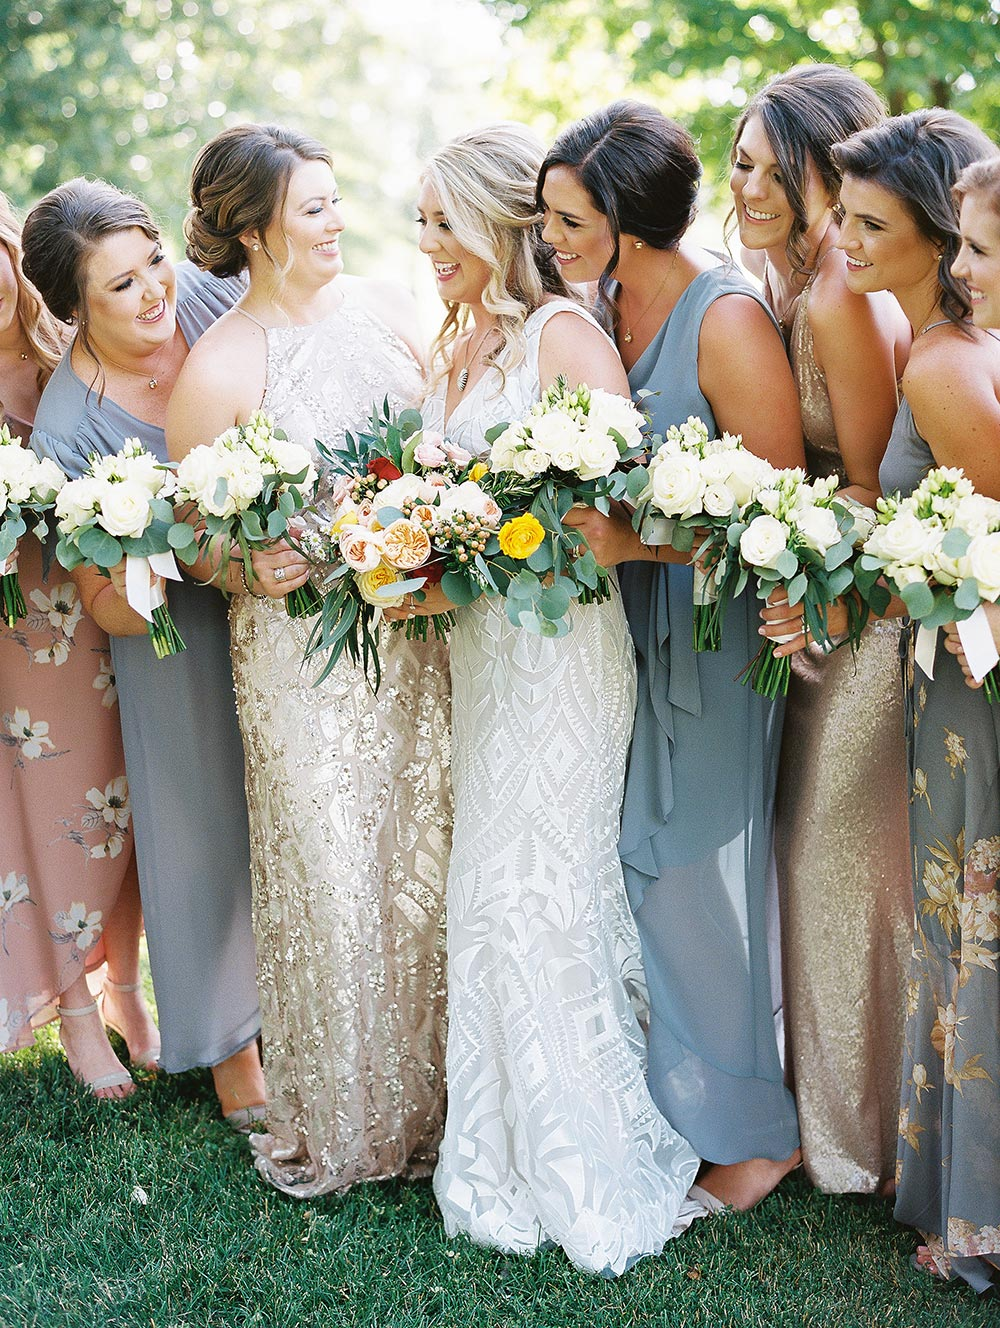 patterned wedding dress with mismatched printed bridesmaid dresses